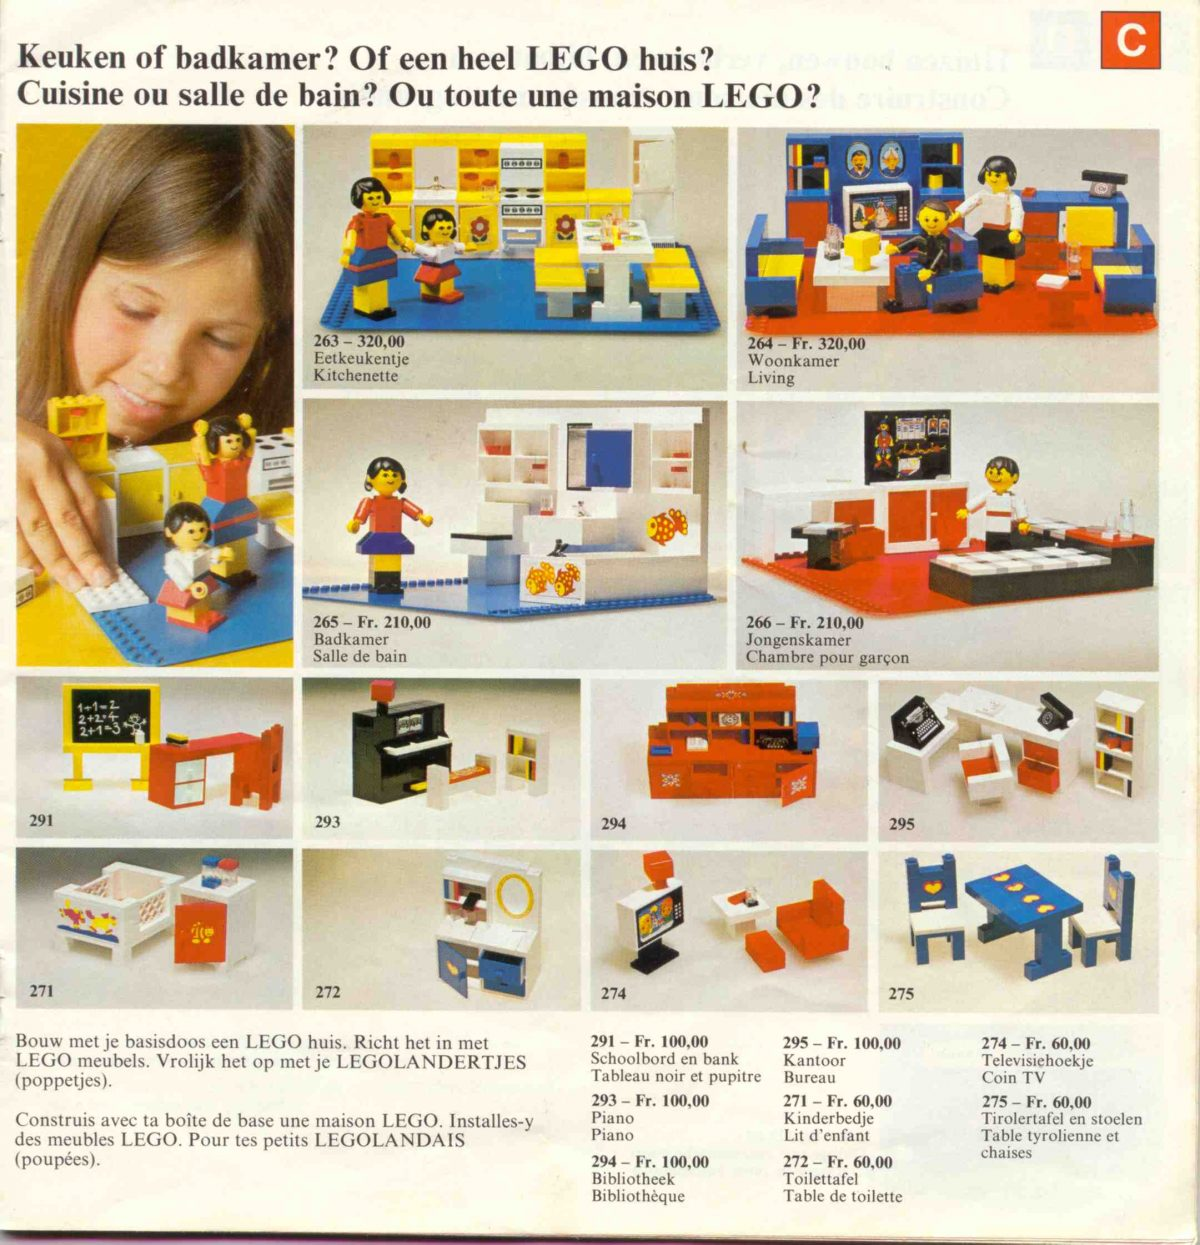 Horror Woonkamer Lego Marketing Materials From The 1960s 1980s Encouraged Boys And